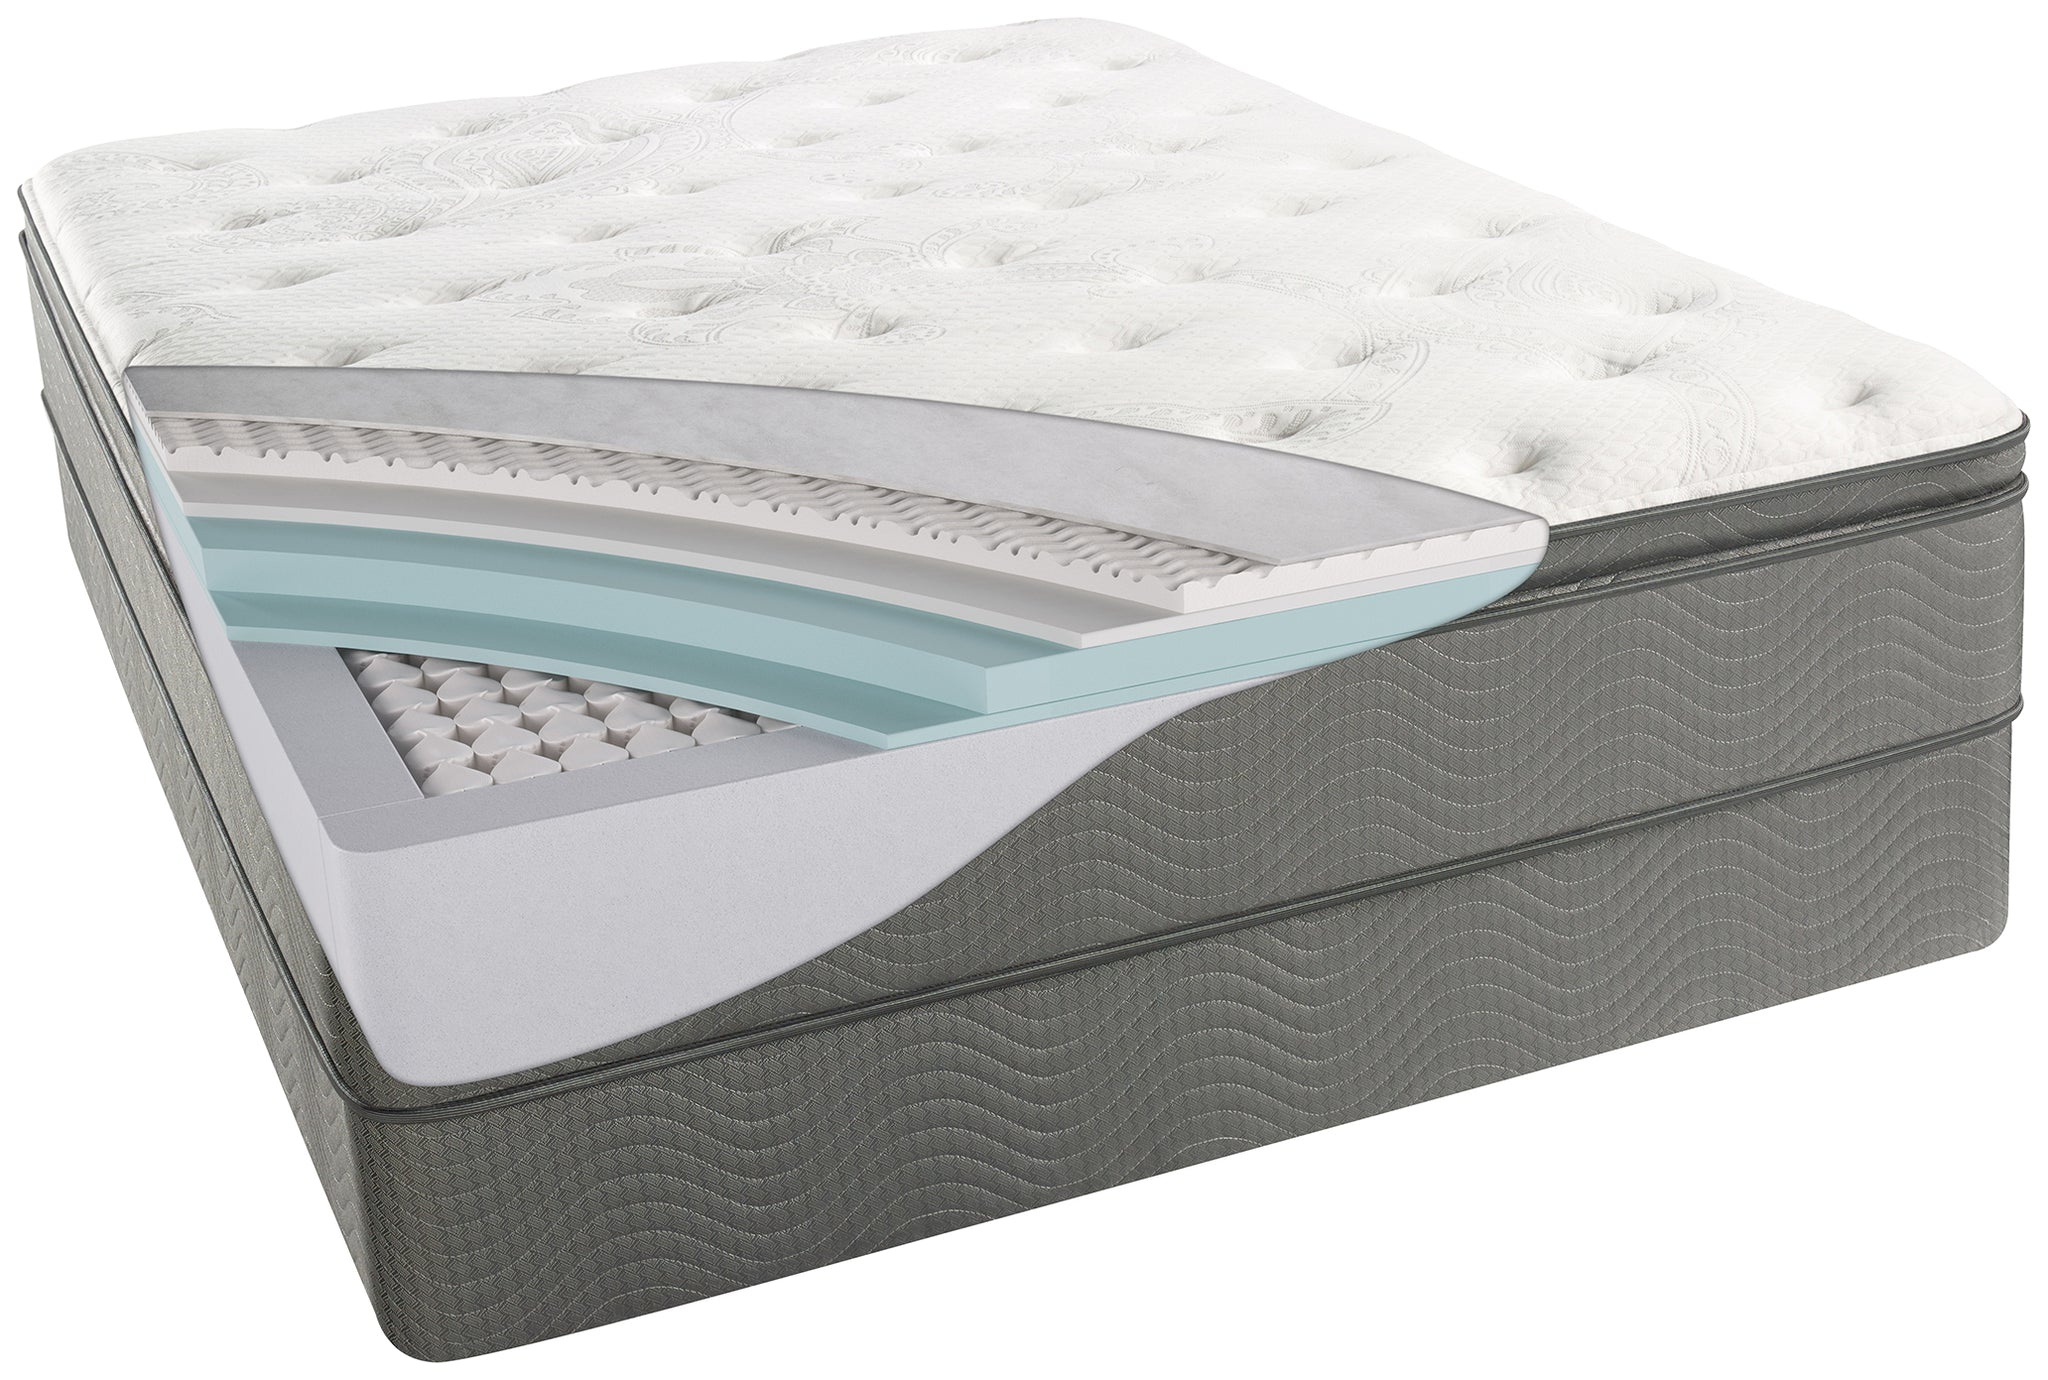 top medium beautyrest pillow mattresses mattress reviews wayfair pdx recharge simmons topper